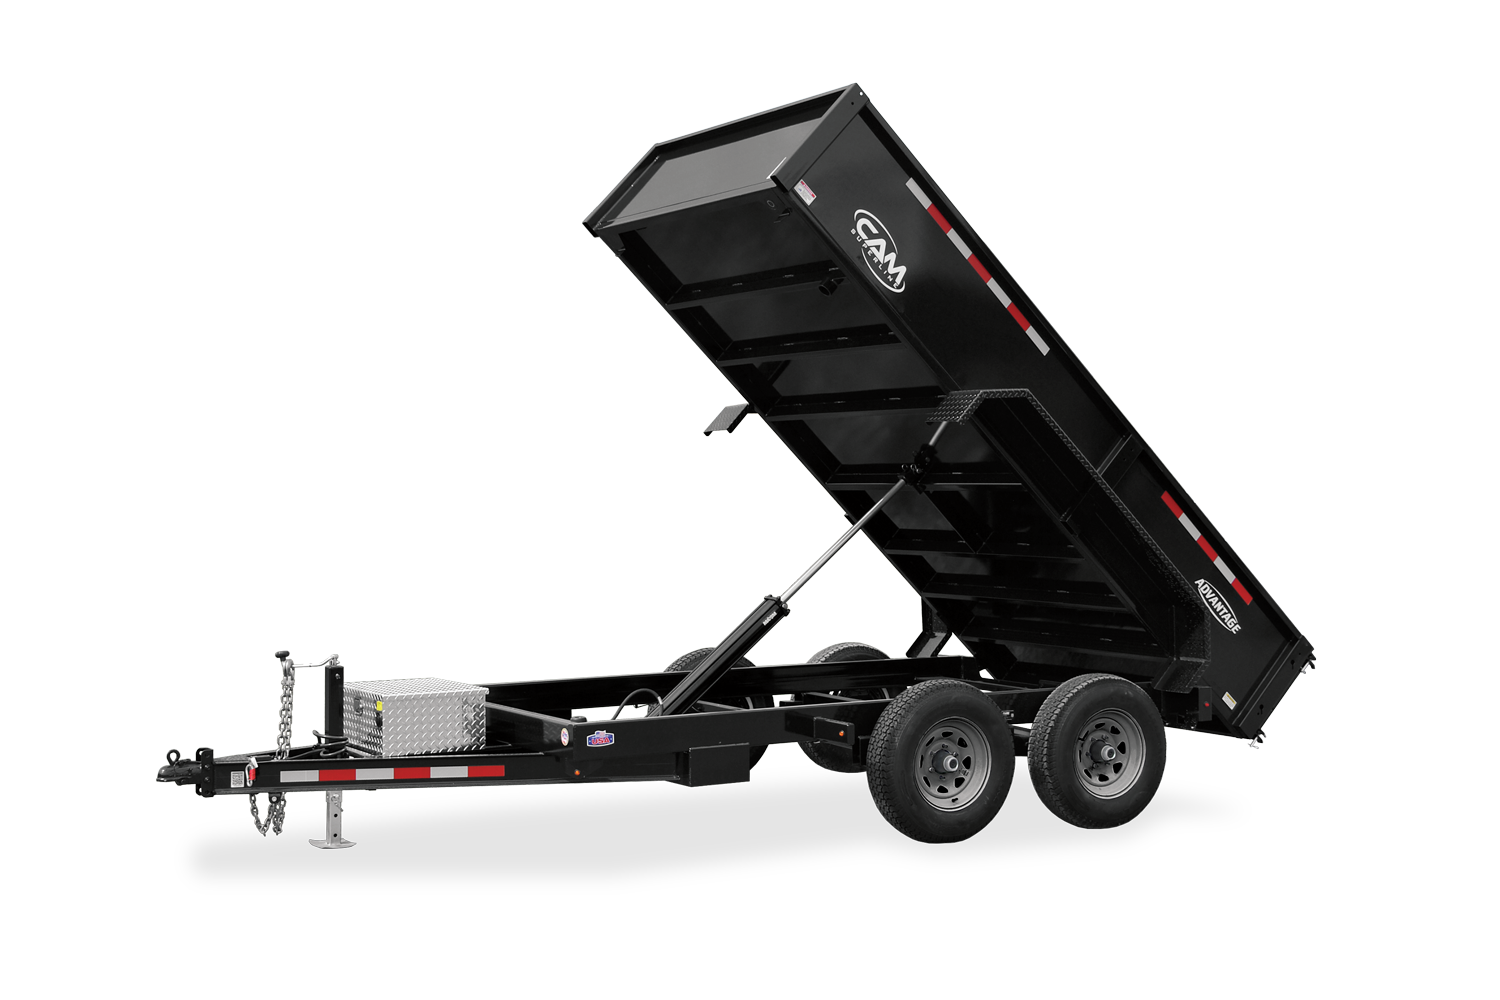 2021 Cam Superline 3.5 Ton Advantage Low Profile Dump 5x10